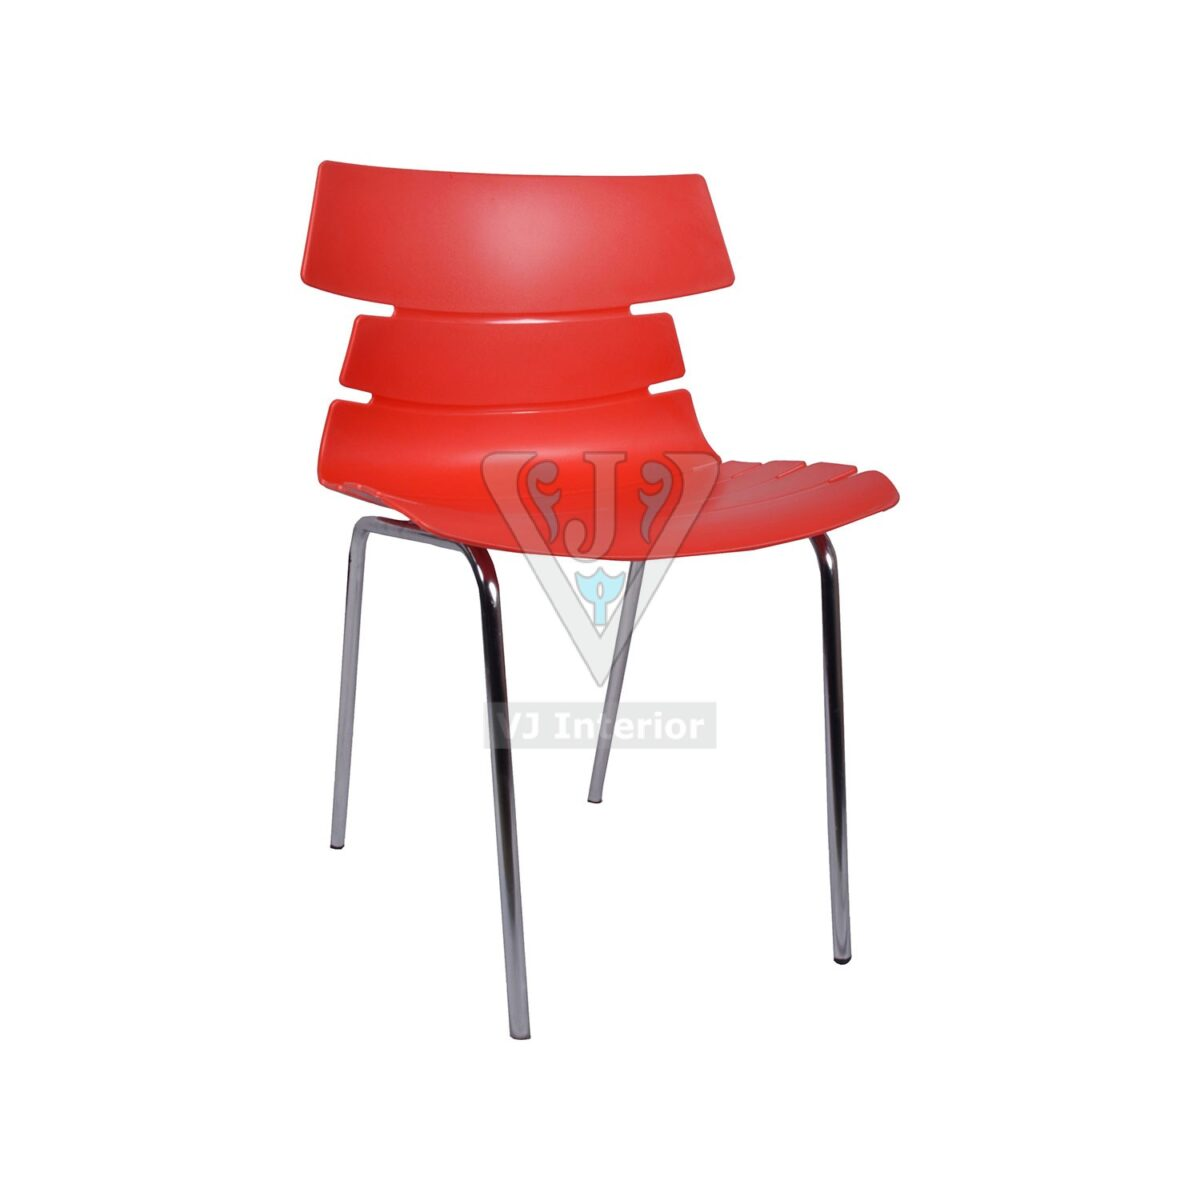 THE ALISAR STEEL FRAME PLASTIC CHAIR RED